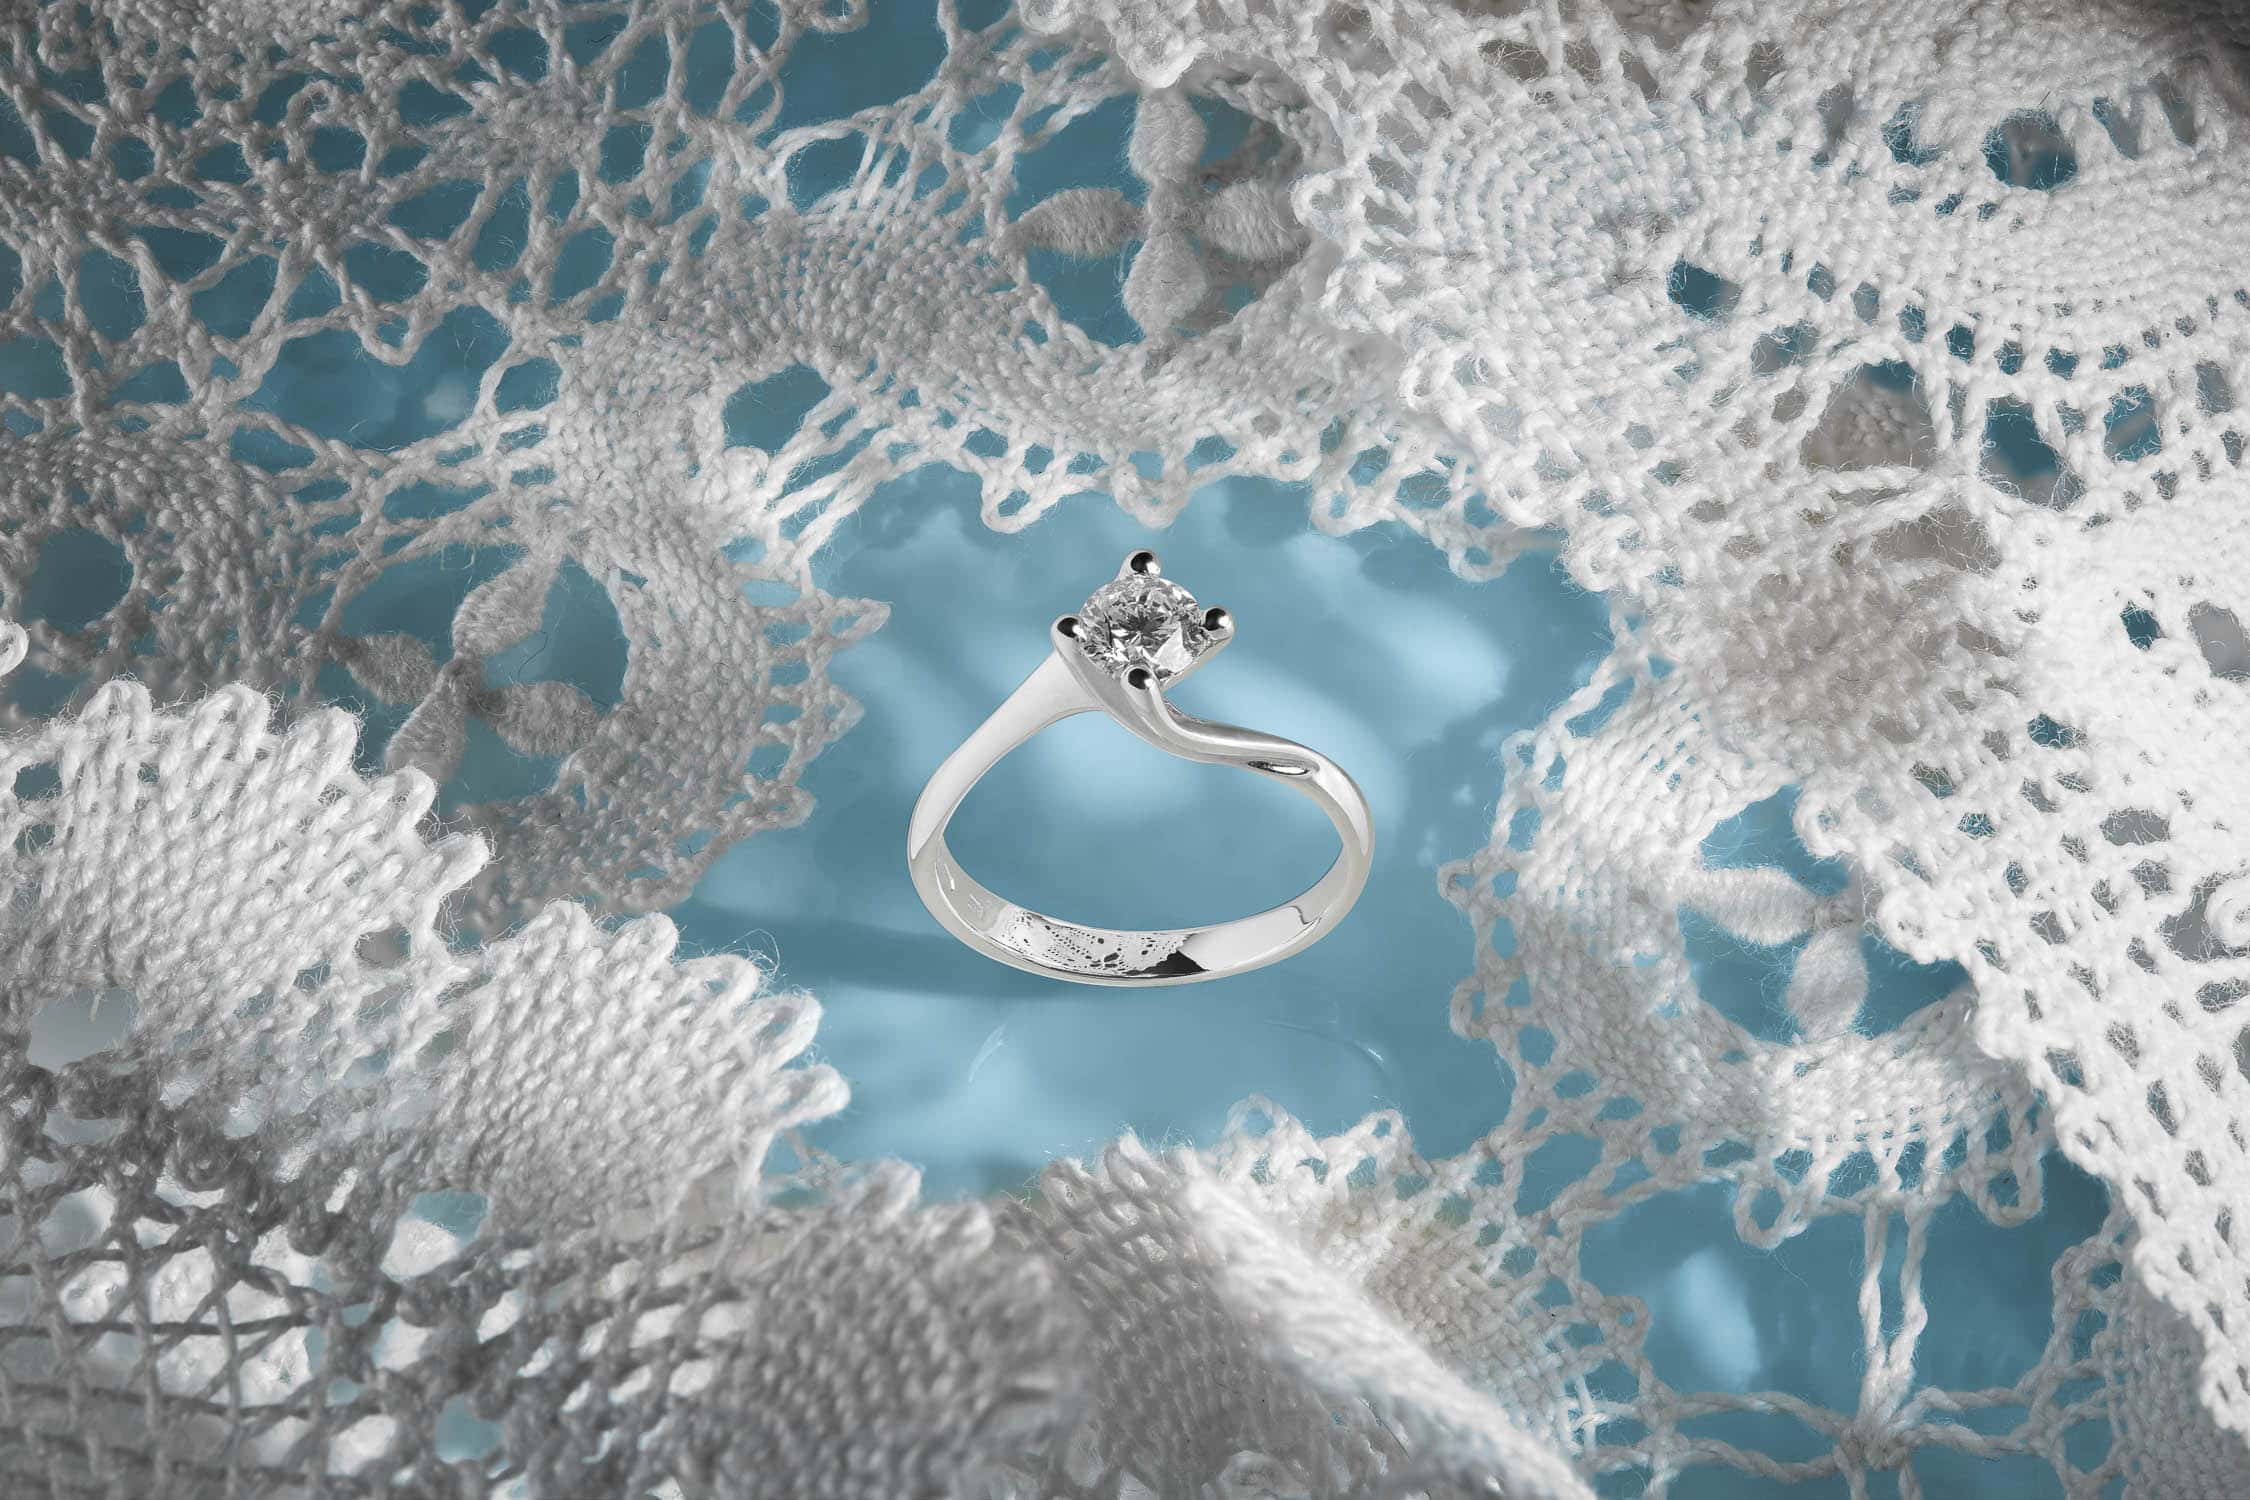 Diamond ring & the cultural heritage